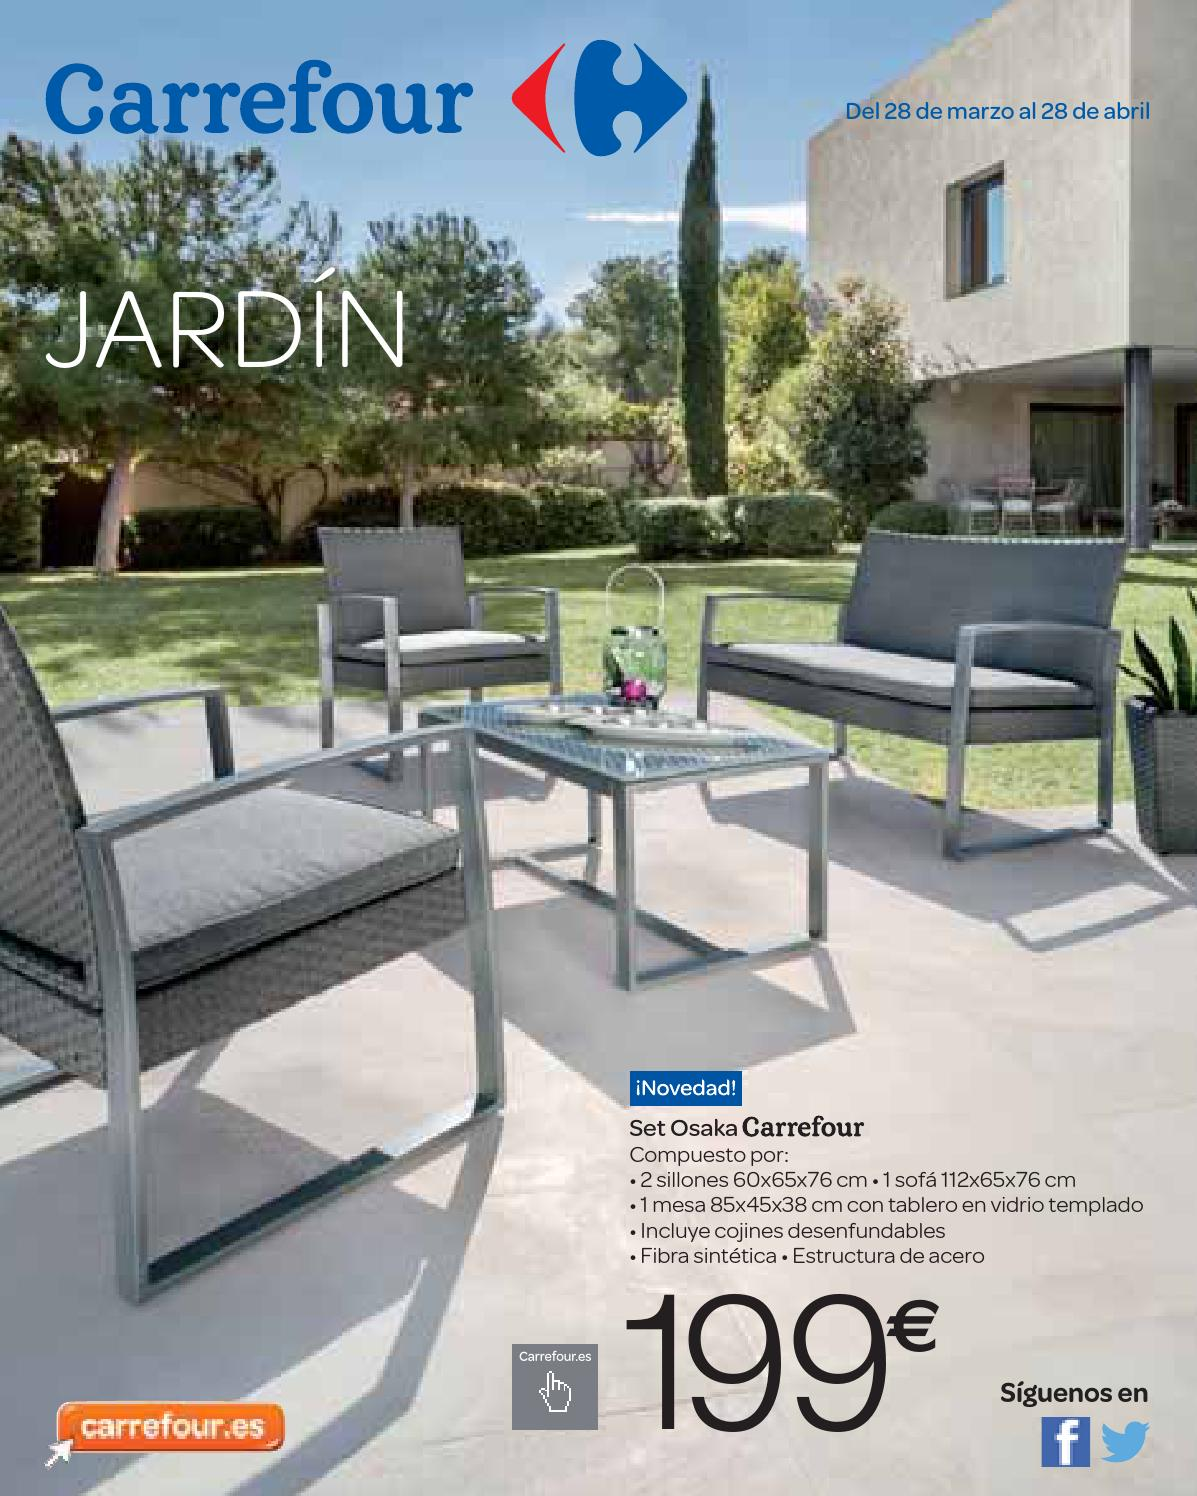 Carrefour Jardín by André Gonçalves - issuu